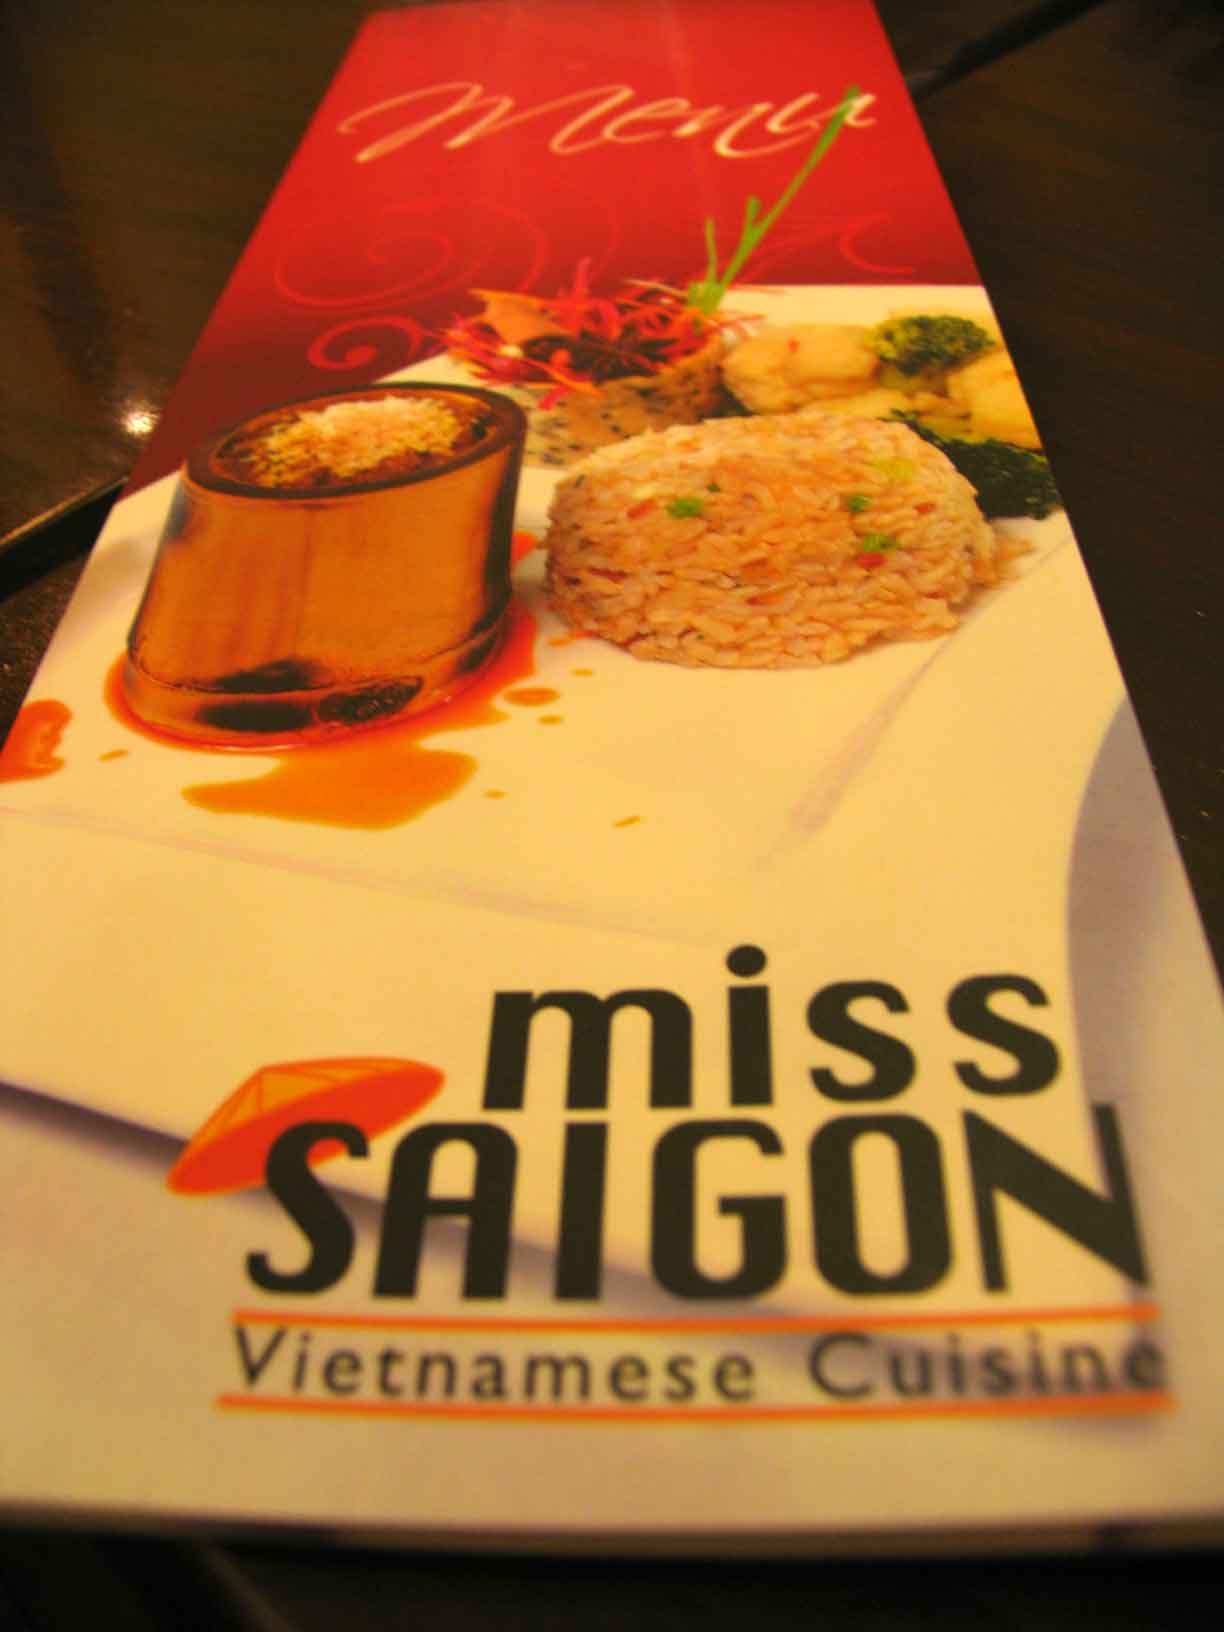 Miss Saigon menu